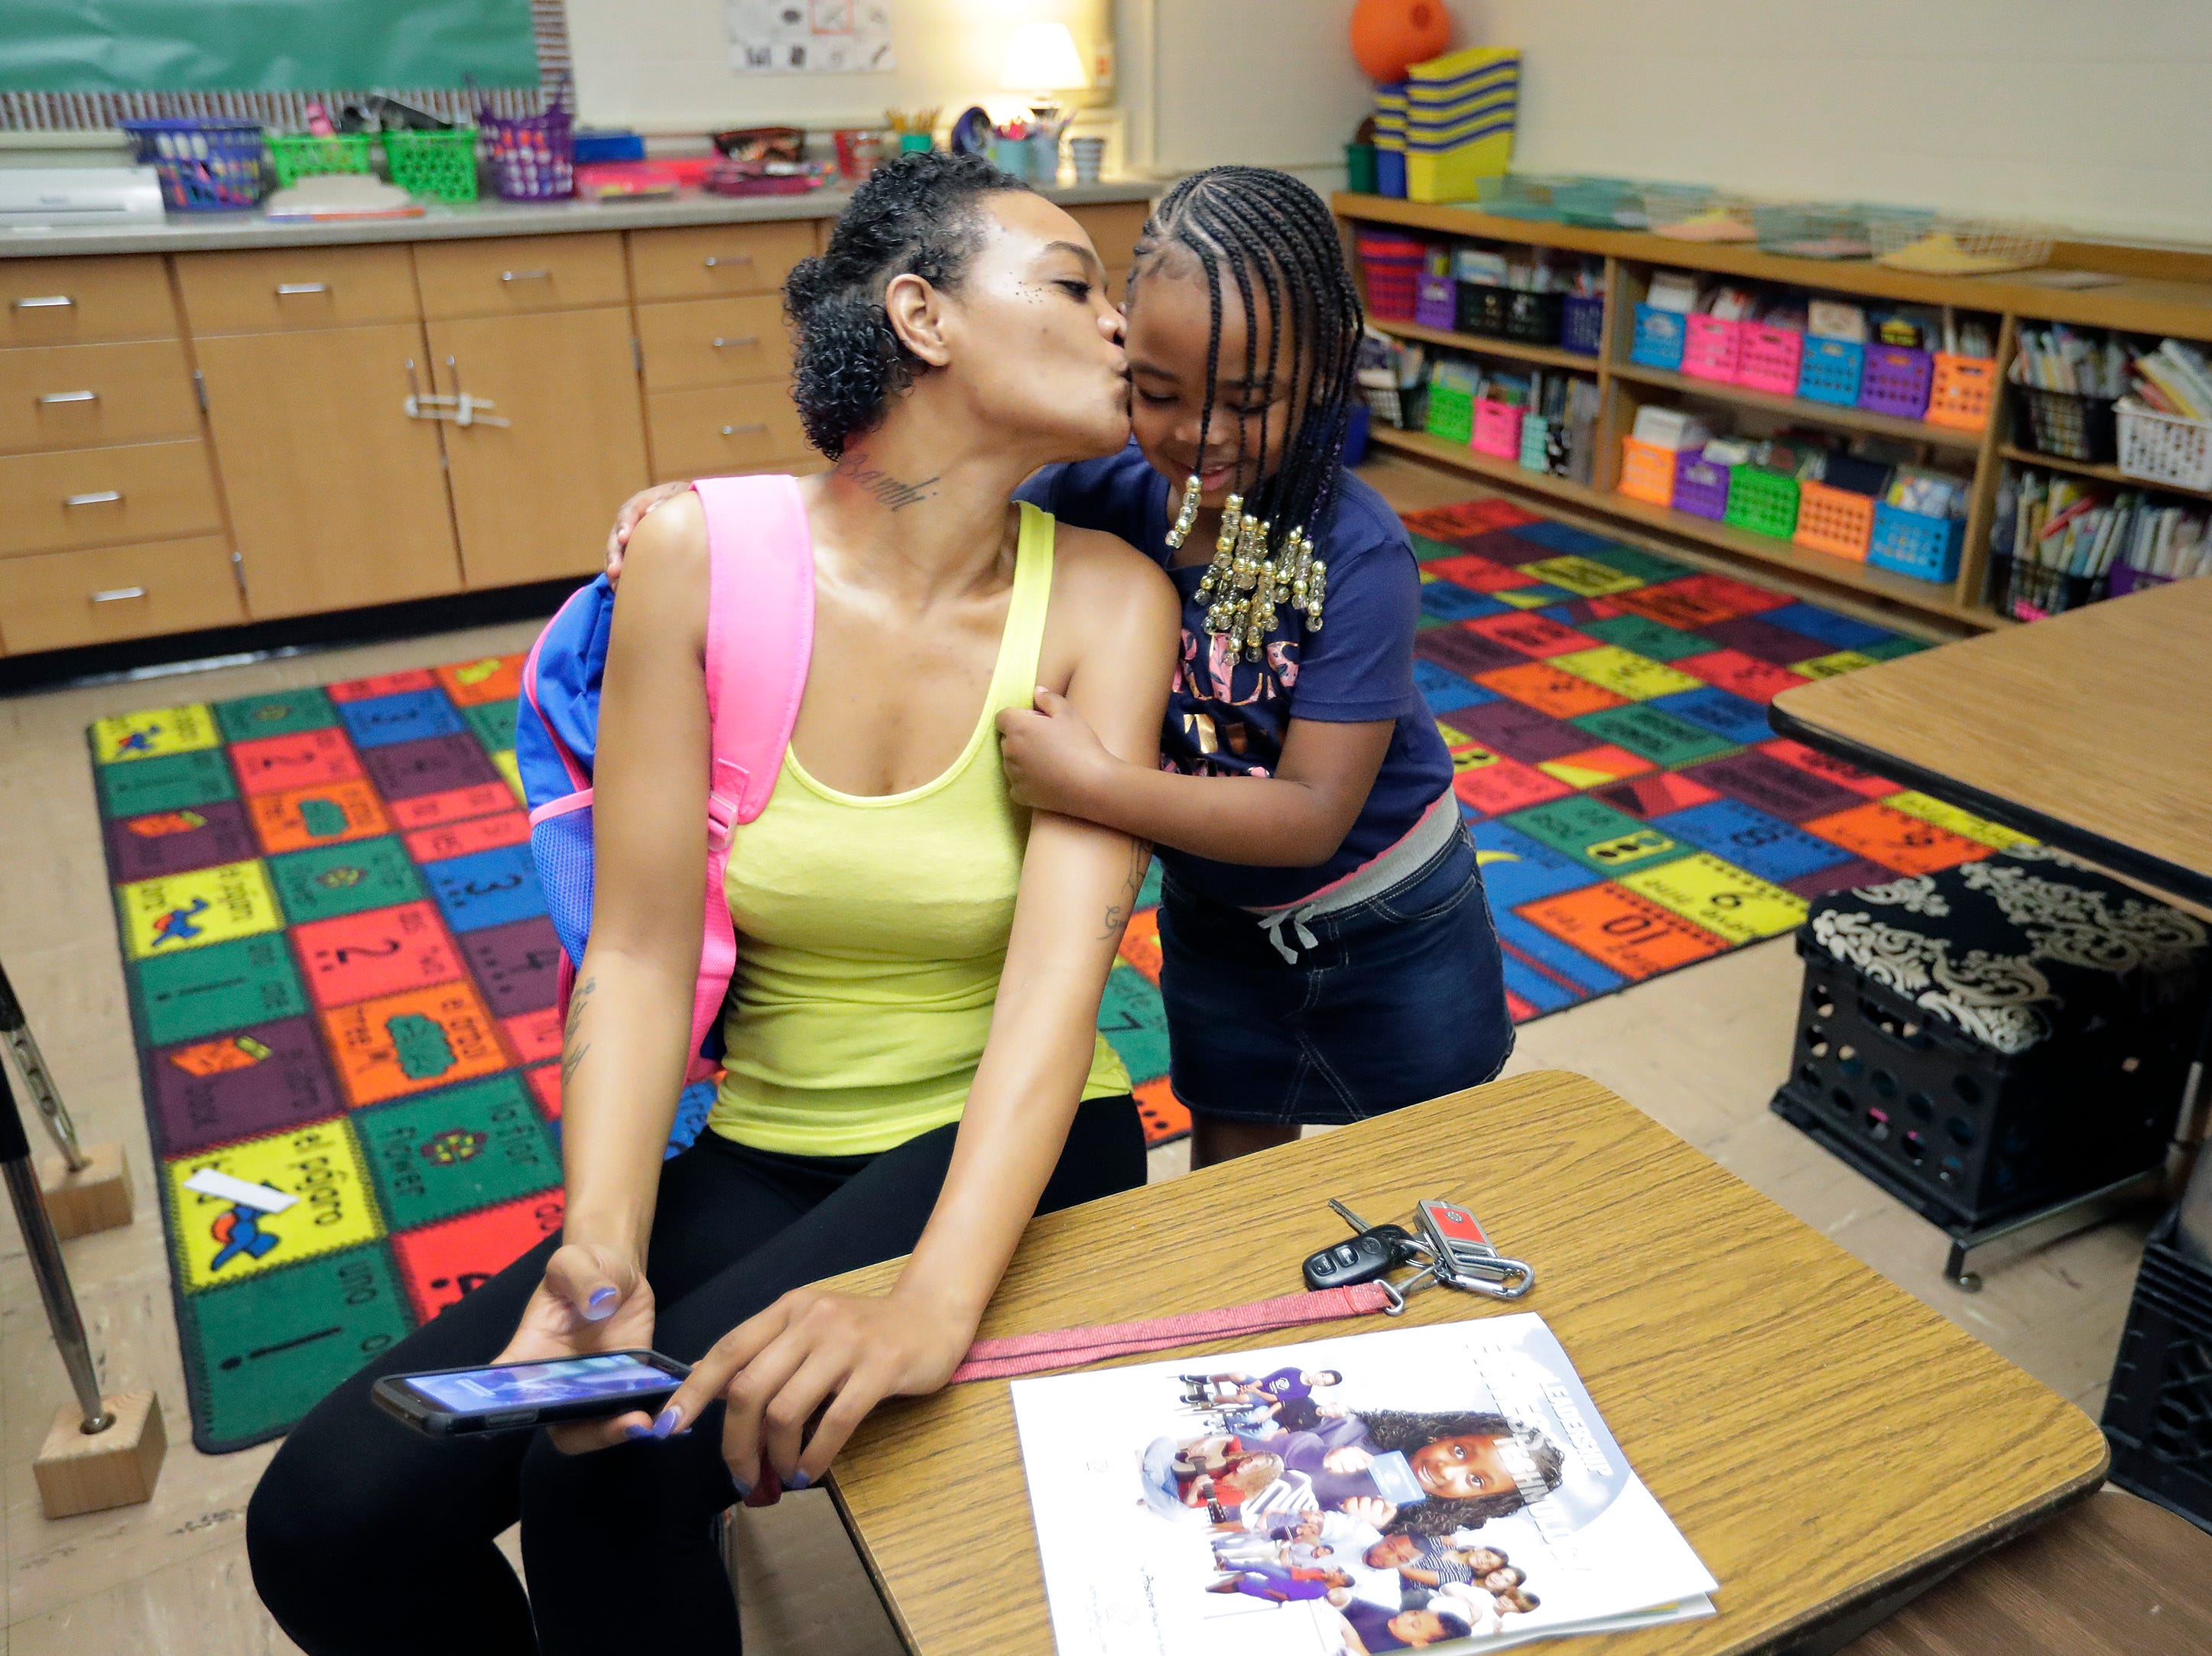 Jessica Terry, left, kisses her daughter Jalayah West, 6, as gets ready to join her first grade classmates on the first day of school Tuesday, Sept. 4, 2018, at Badger Elementary School in Appleton, Wis. 